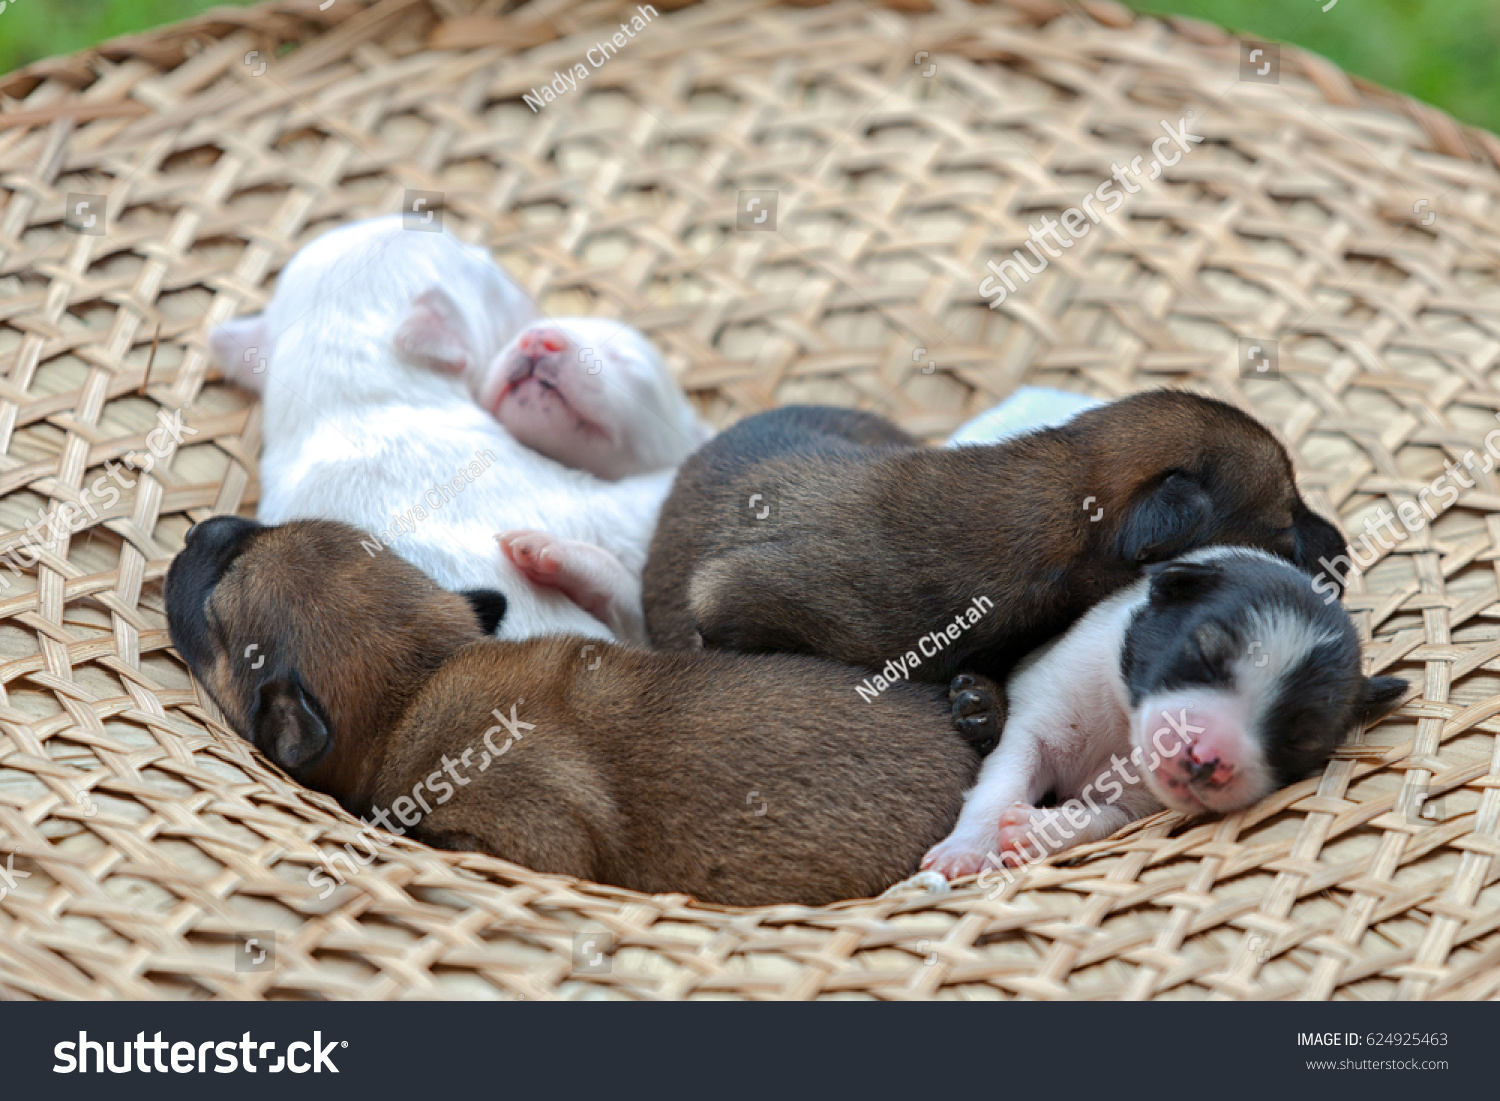 5a14ff96505e7 New Born Puppy Pedigreed Dog French Stock Photo (Edit Now) 624925463 ...